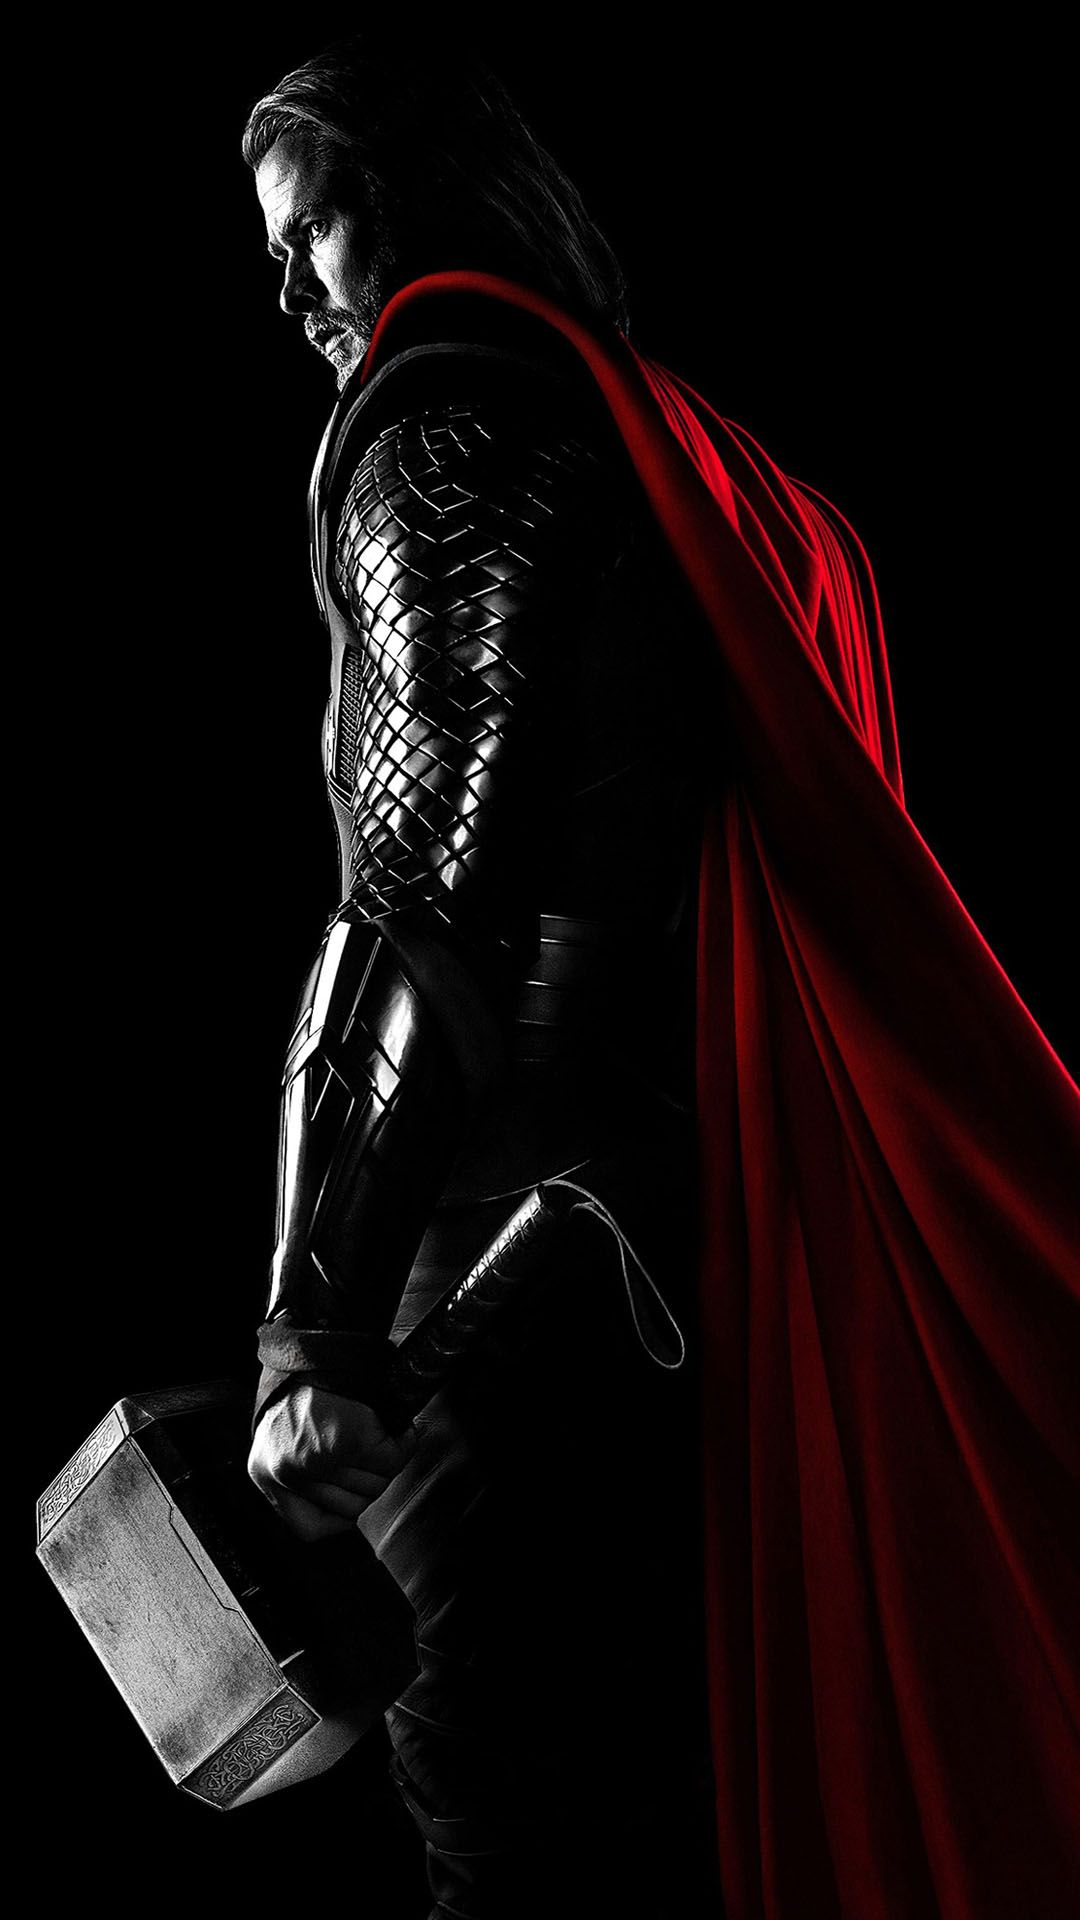 Mobile Hd Wallpaper thor wallpaper hd 1080x1920